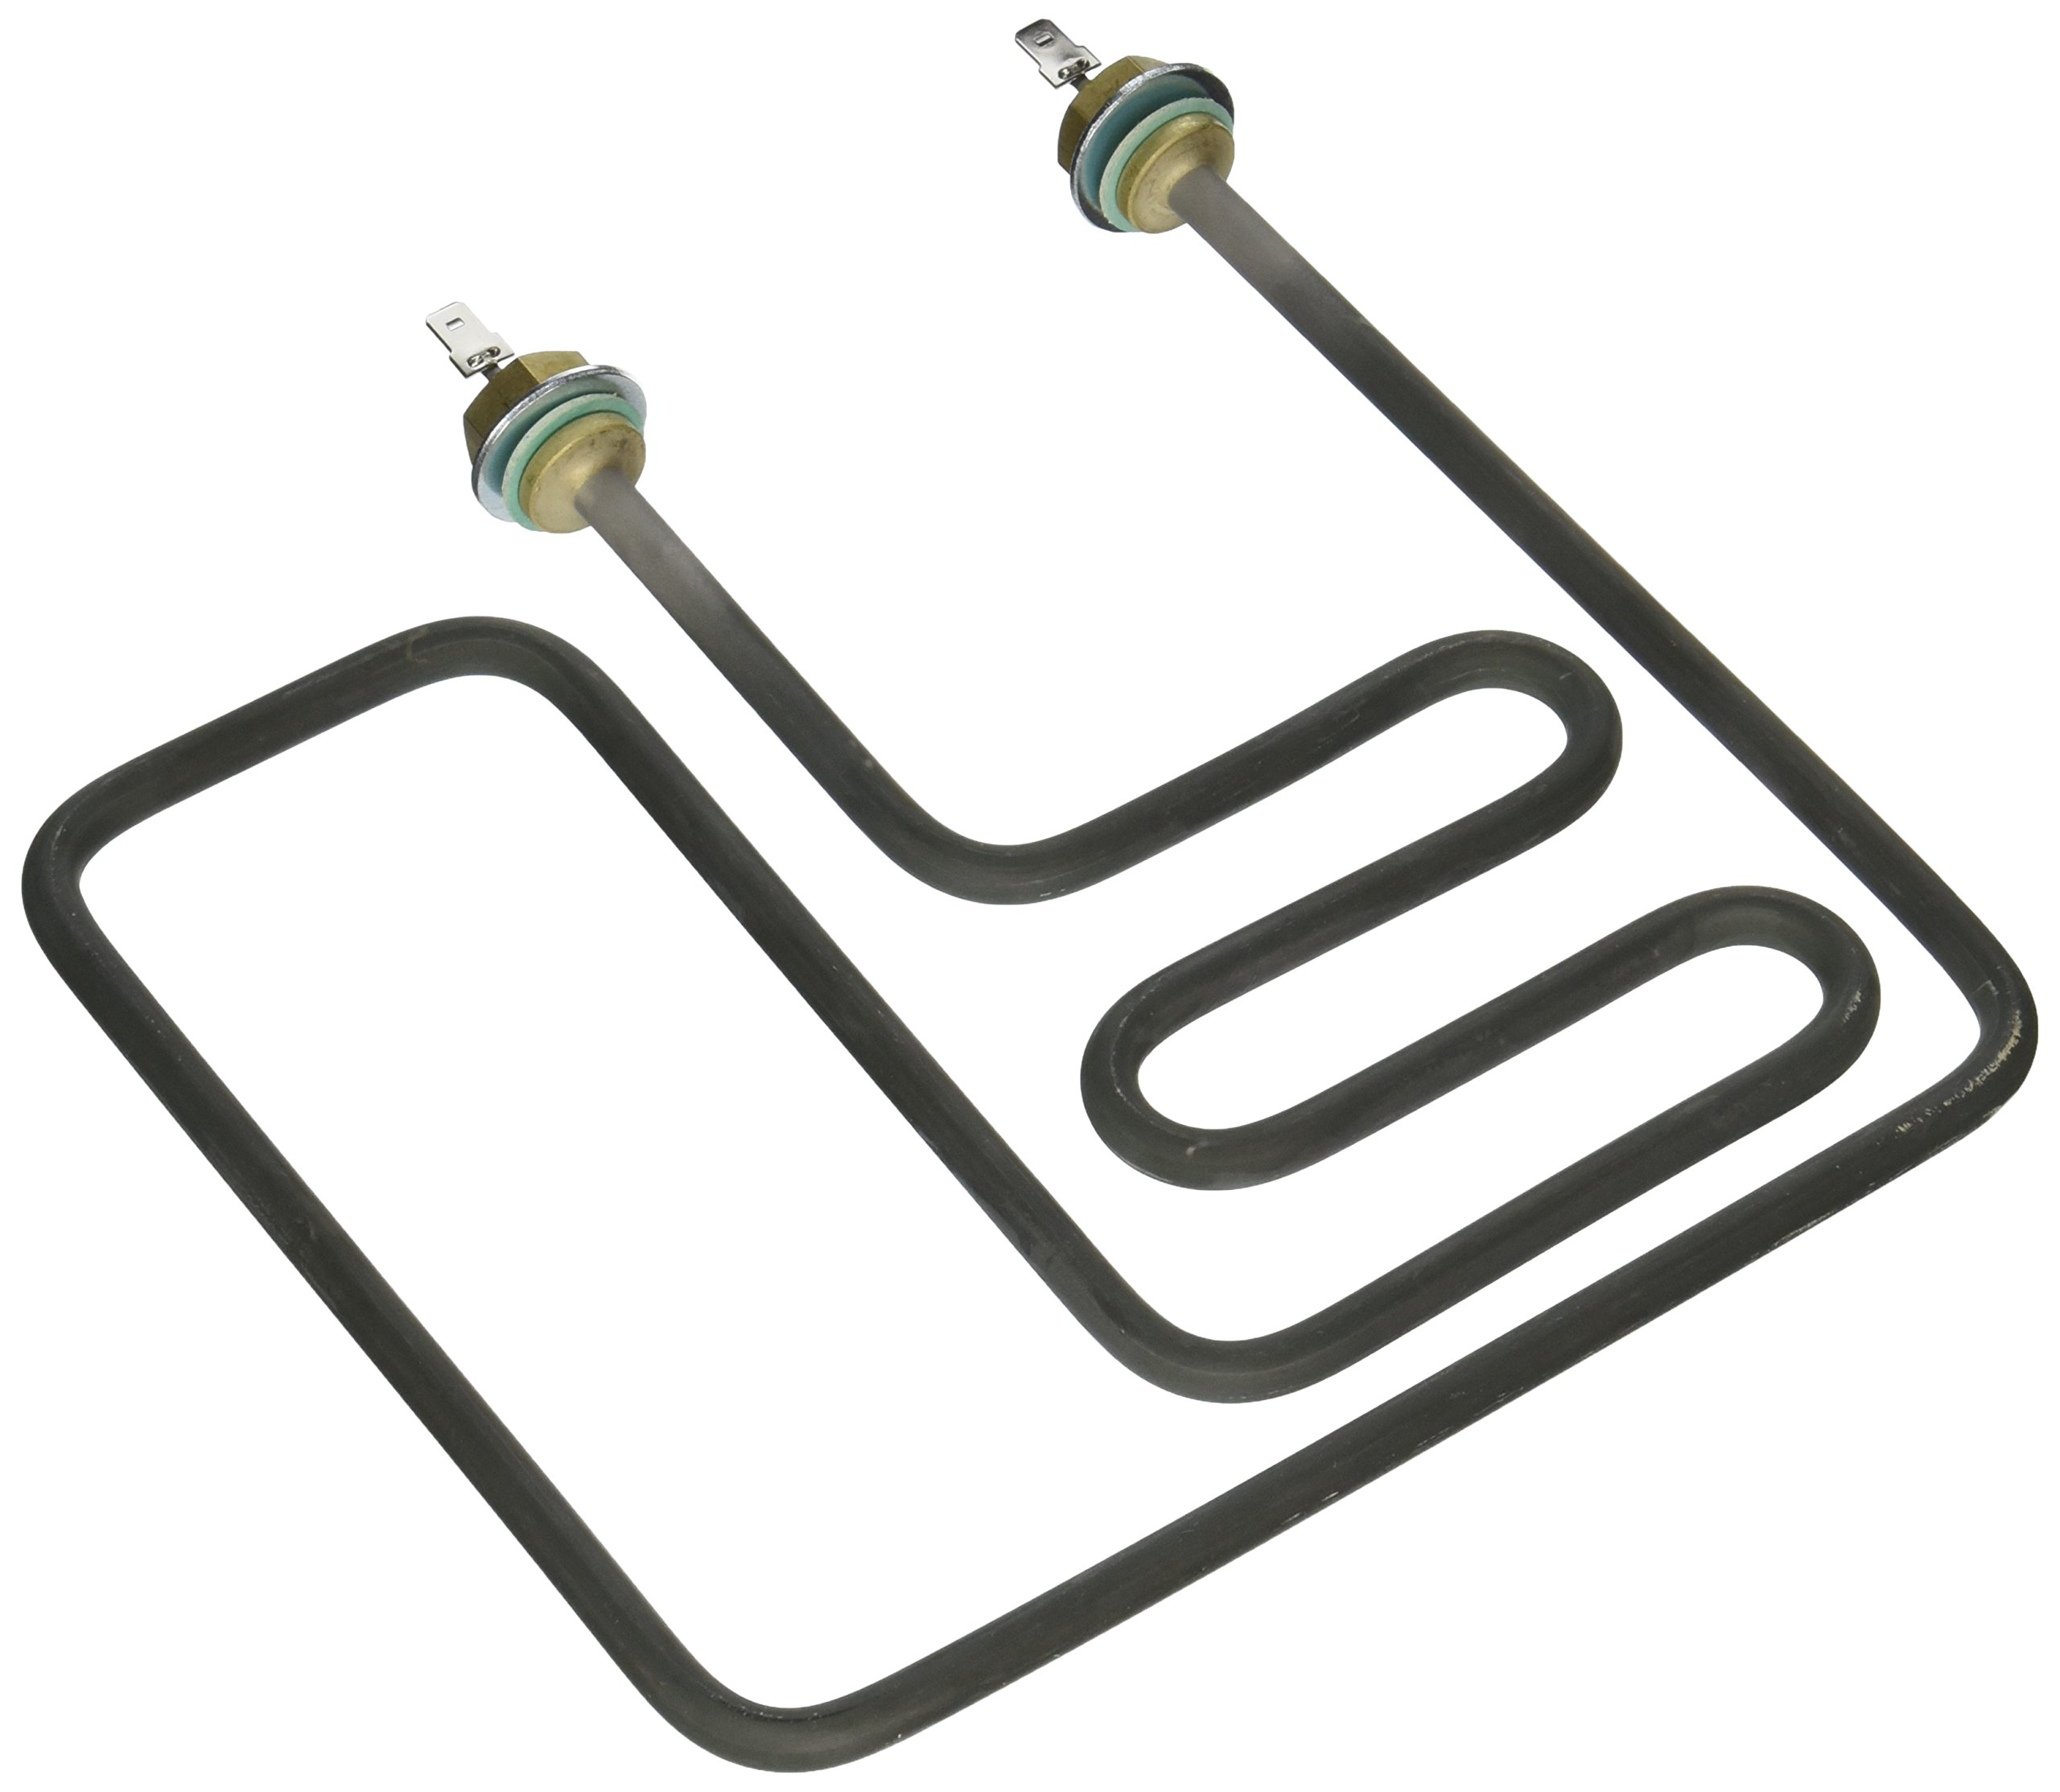 Skuttle 000-0430-055 Replacement Heater for Model 60-1, F60-1, and 60-BC1